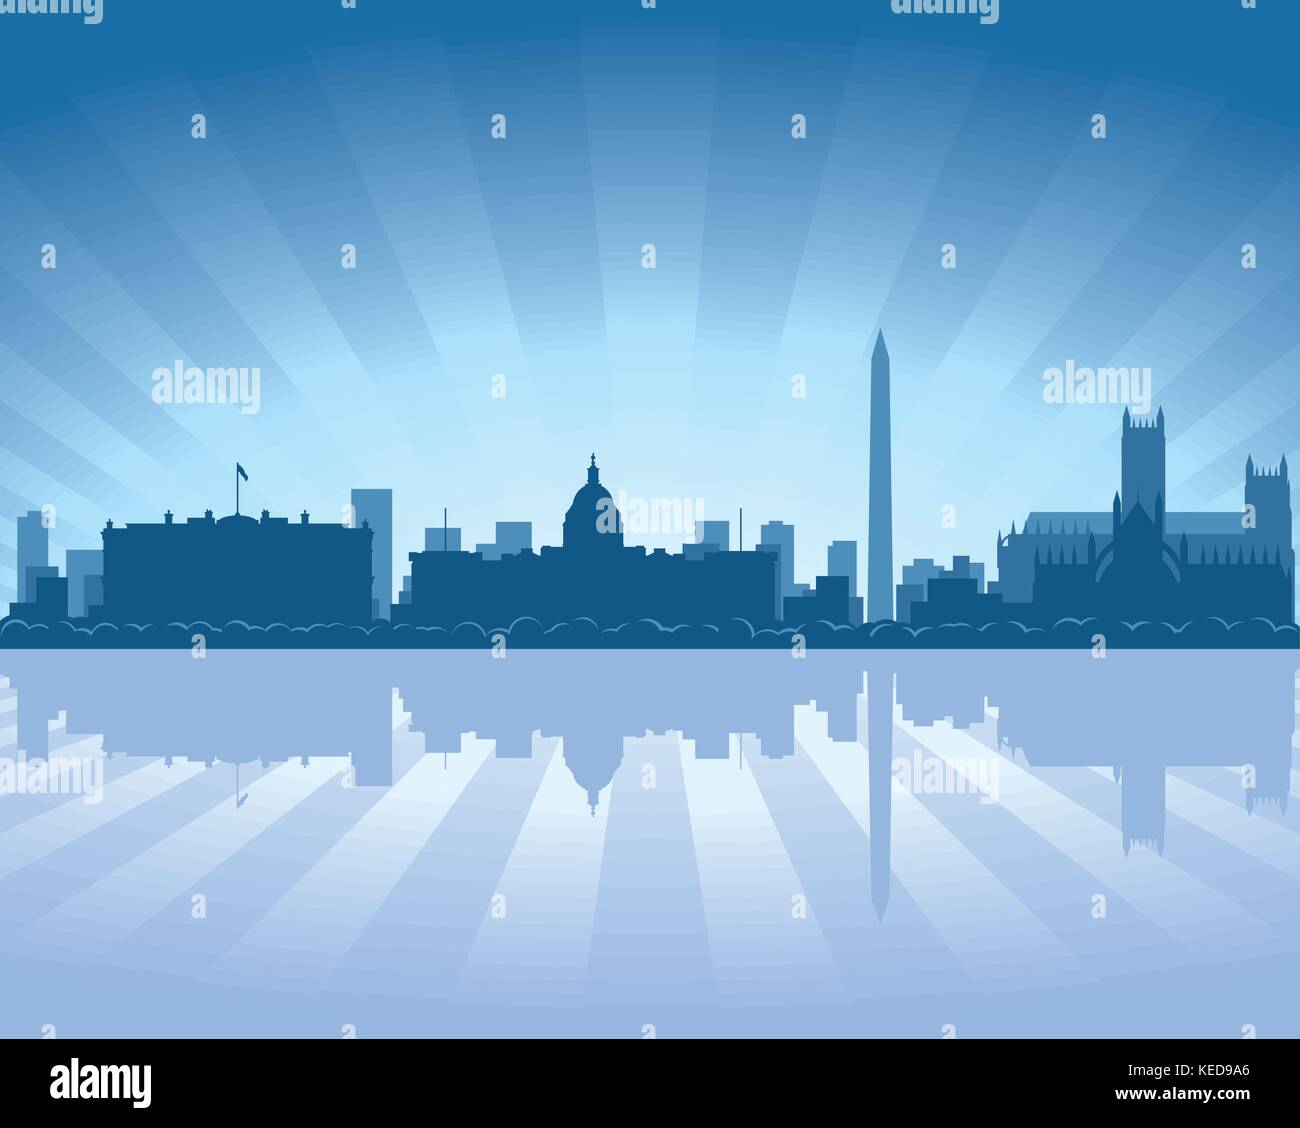 Washington skyline with reflection in water - Stock Vector